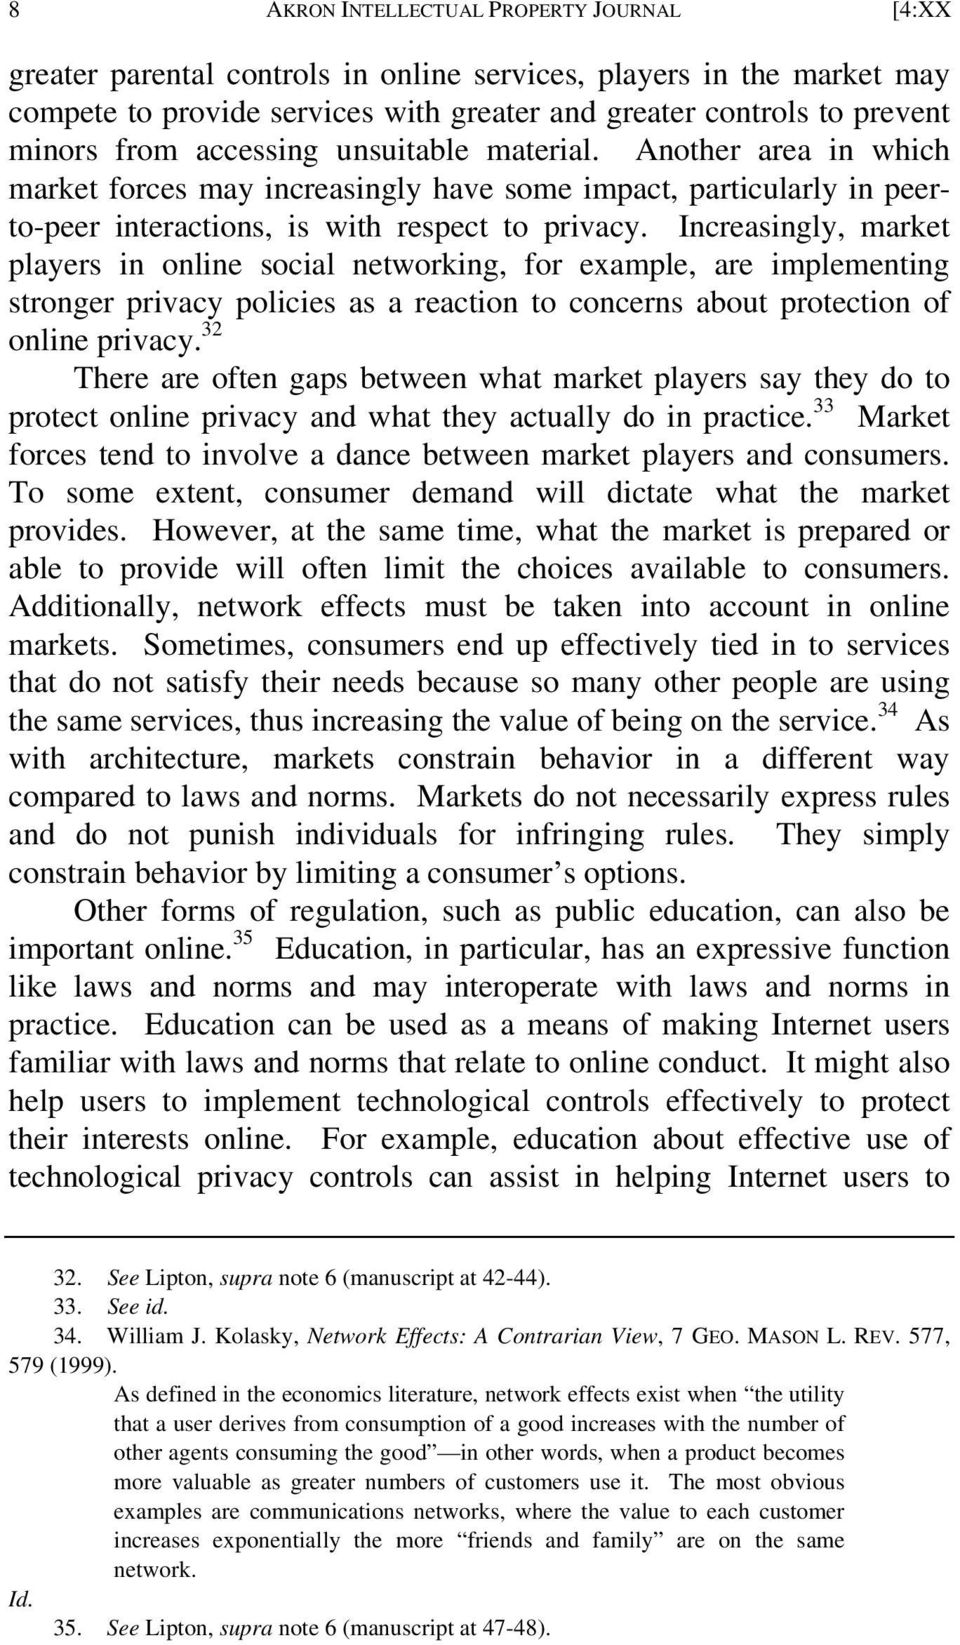 Increasingly, market players in online social networking, for example, are implementing stronger privacy policies as a reaction to concerns about protection of online privacy.